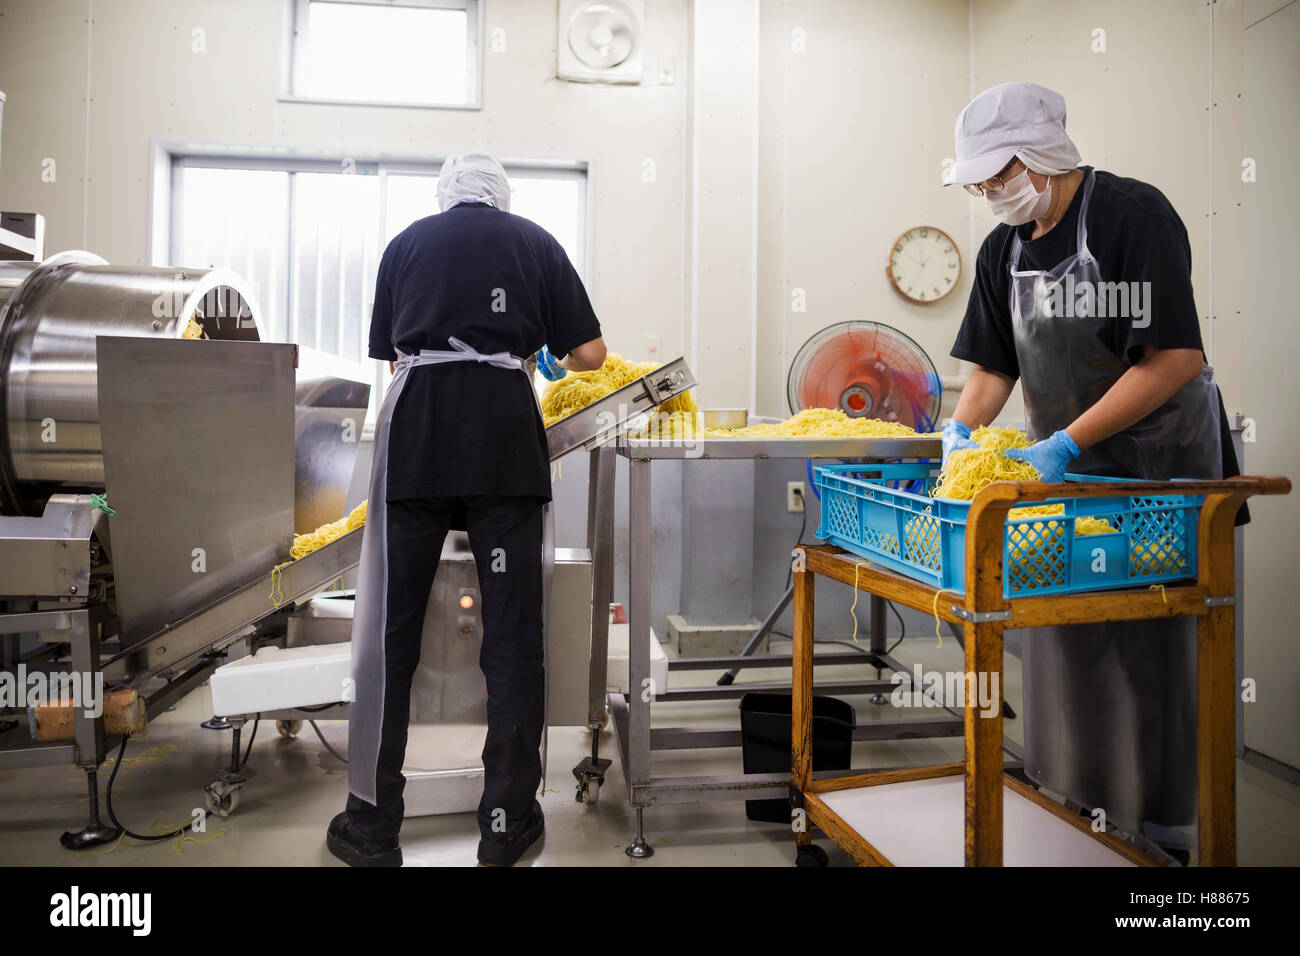 Workers in aprons and hats collecting freshly cut noodles from the conveyor belt to package and sell. - Stock Image